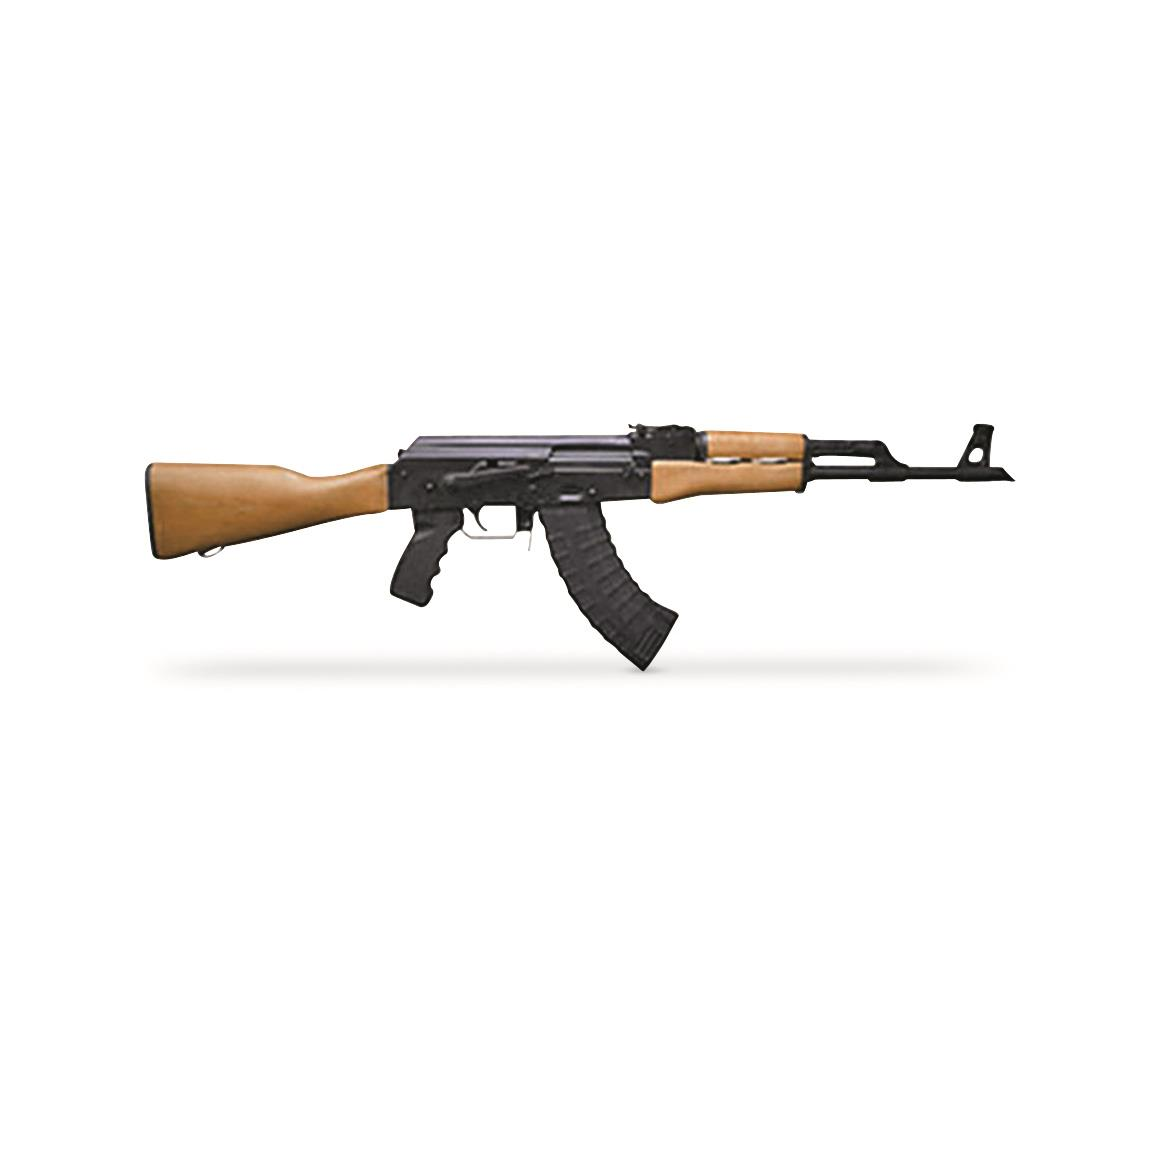 "Century Arms RAS-47 AK, Semi-Automatic, 7.62x39mm, 16.5"" Barrel, 30+1 Rounds"